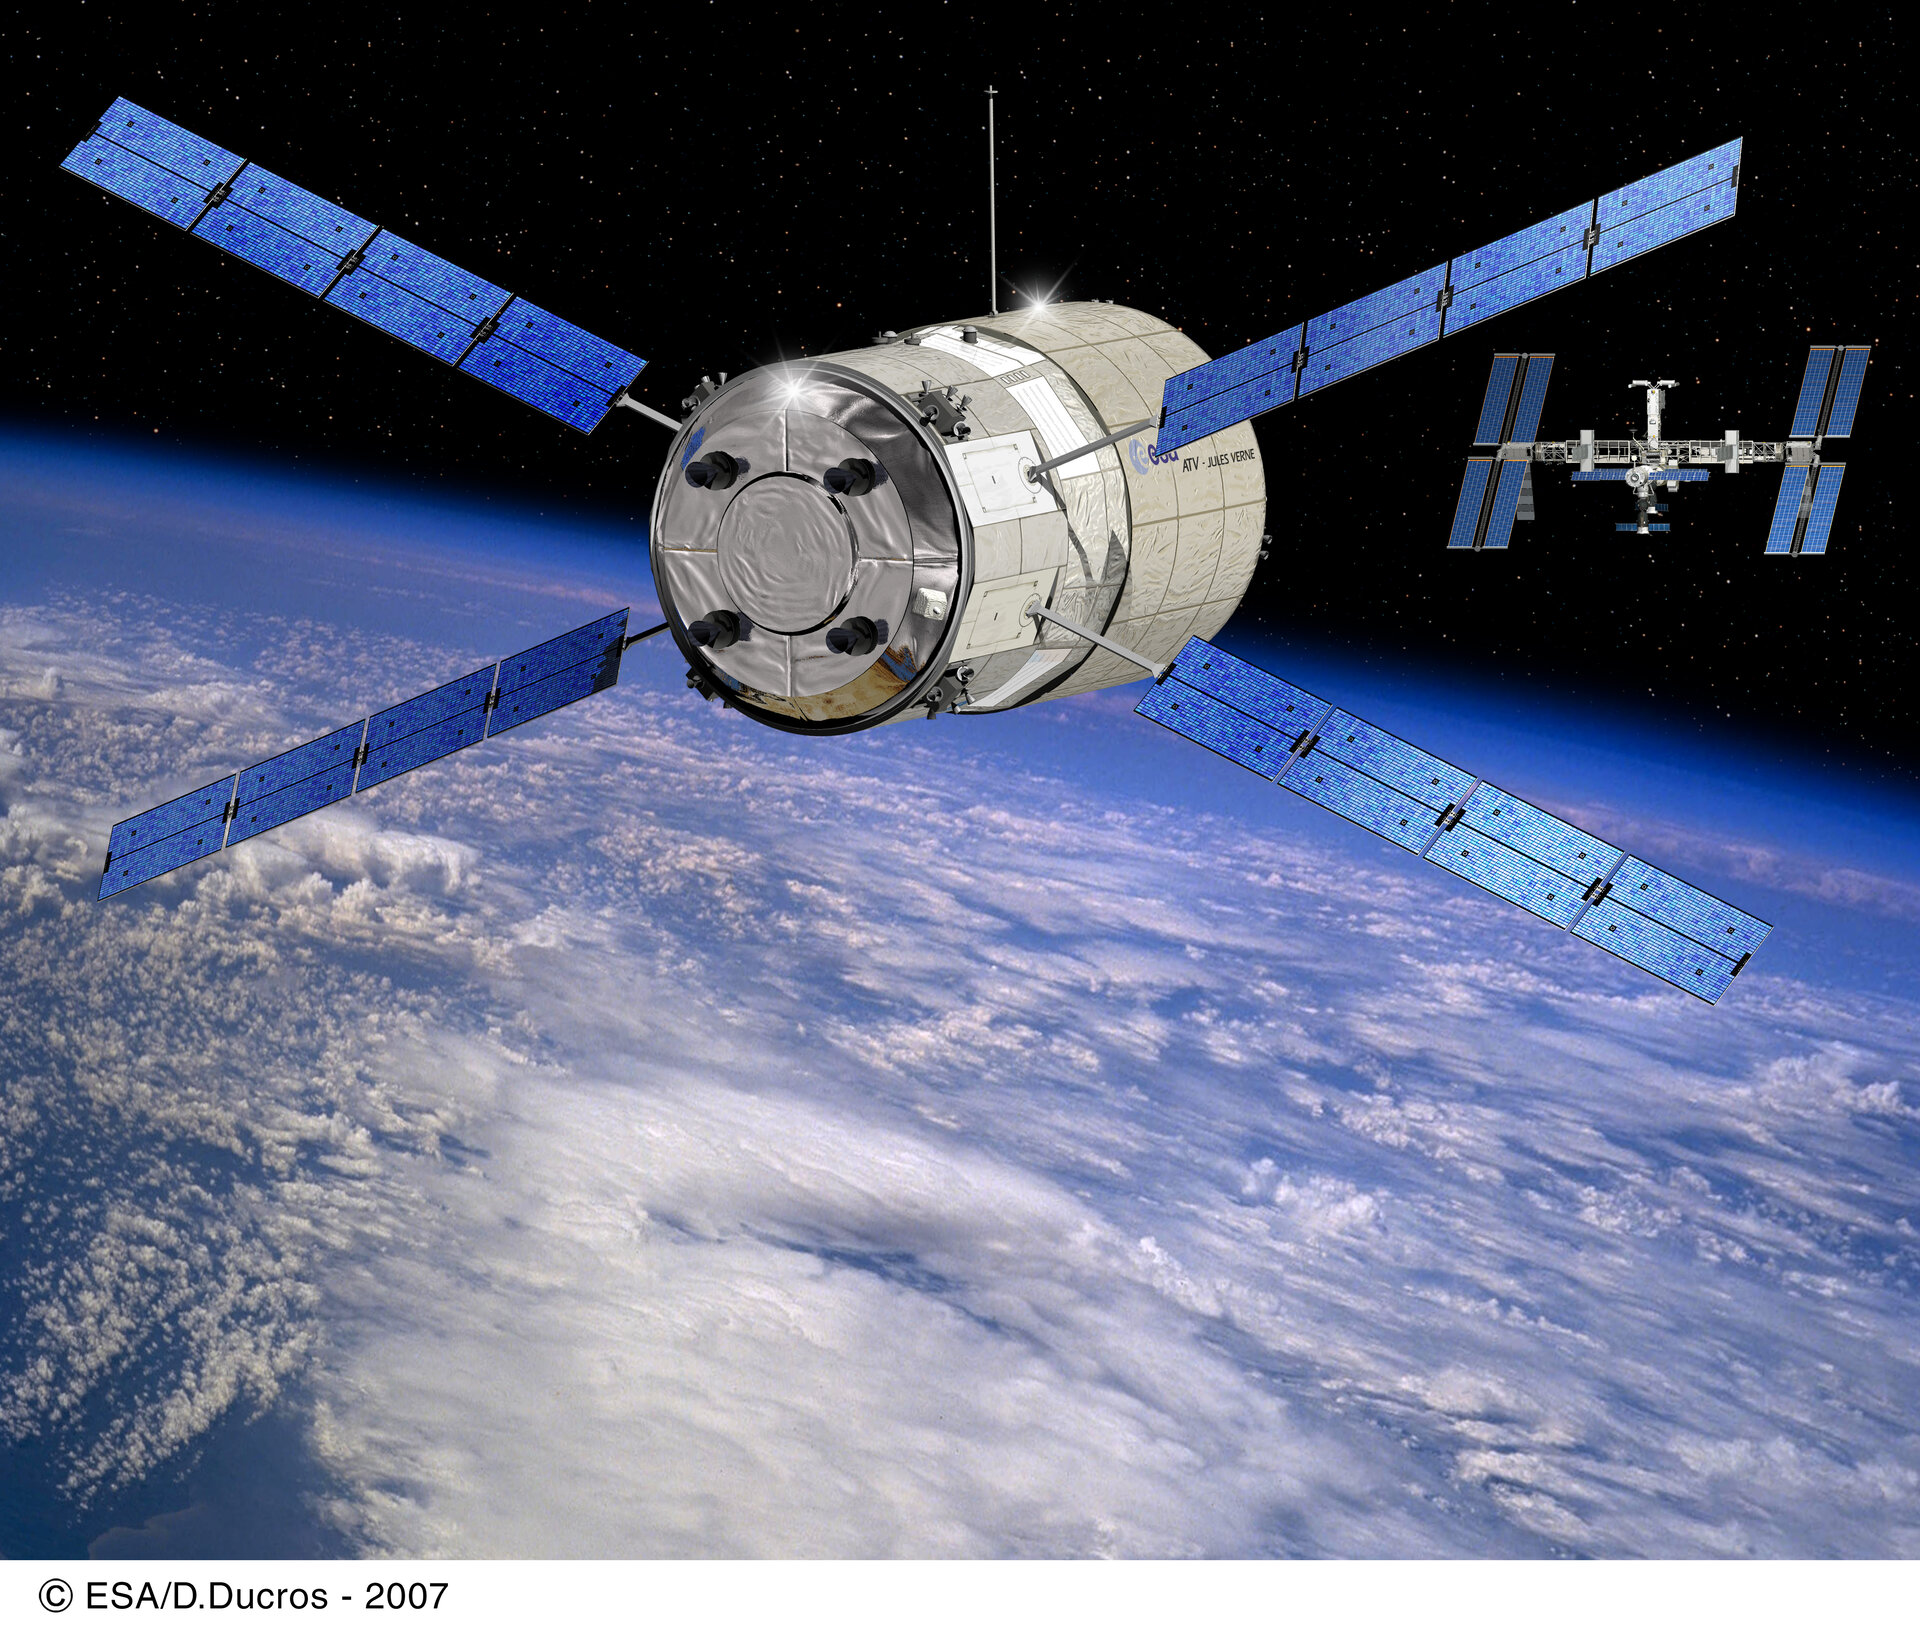 Expedition 16 will support the launch and docking of Jules Verne